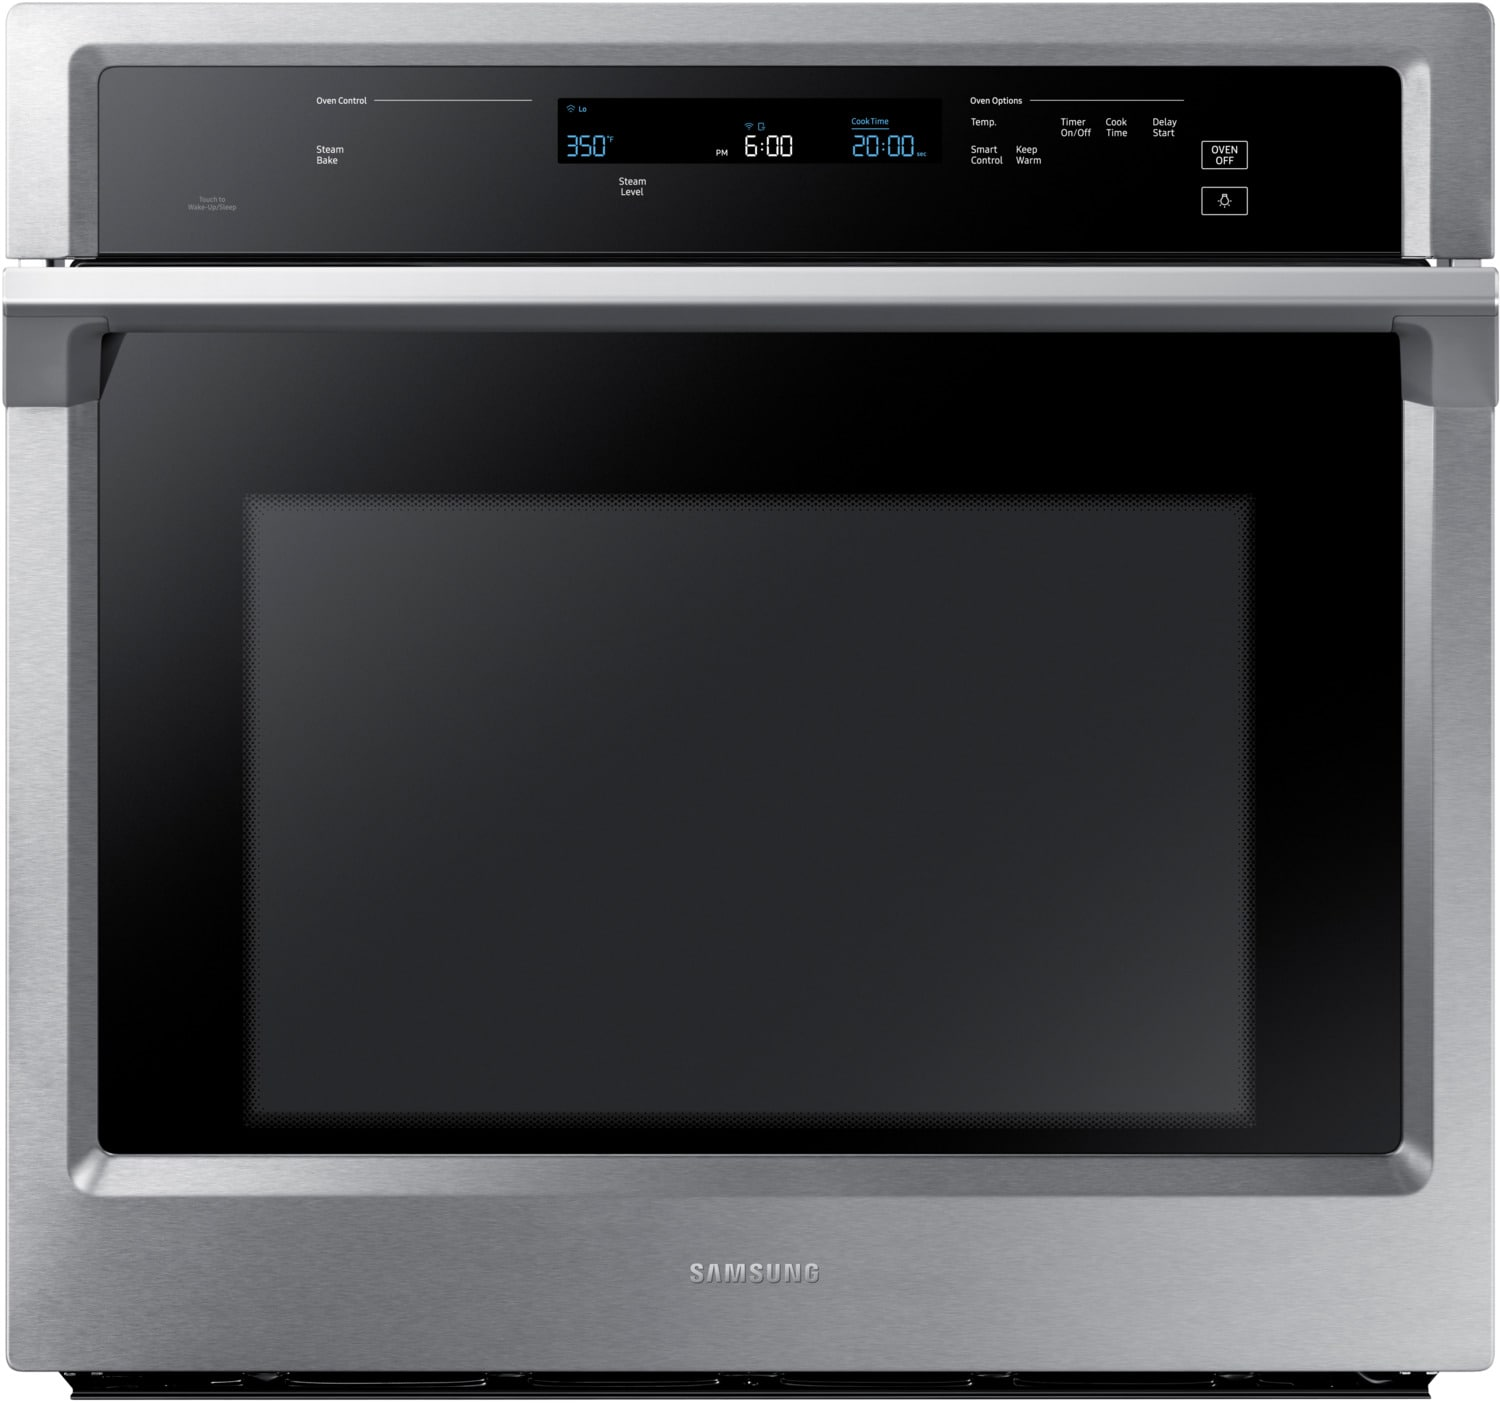 Samsung Stainless Steel Convection Wall Oven (5.1 Cu. Ft.) - NV51K6650SS/AA